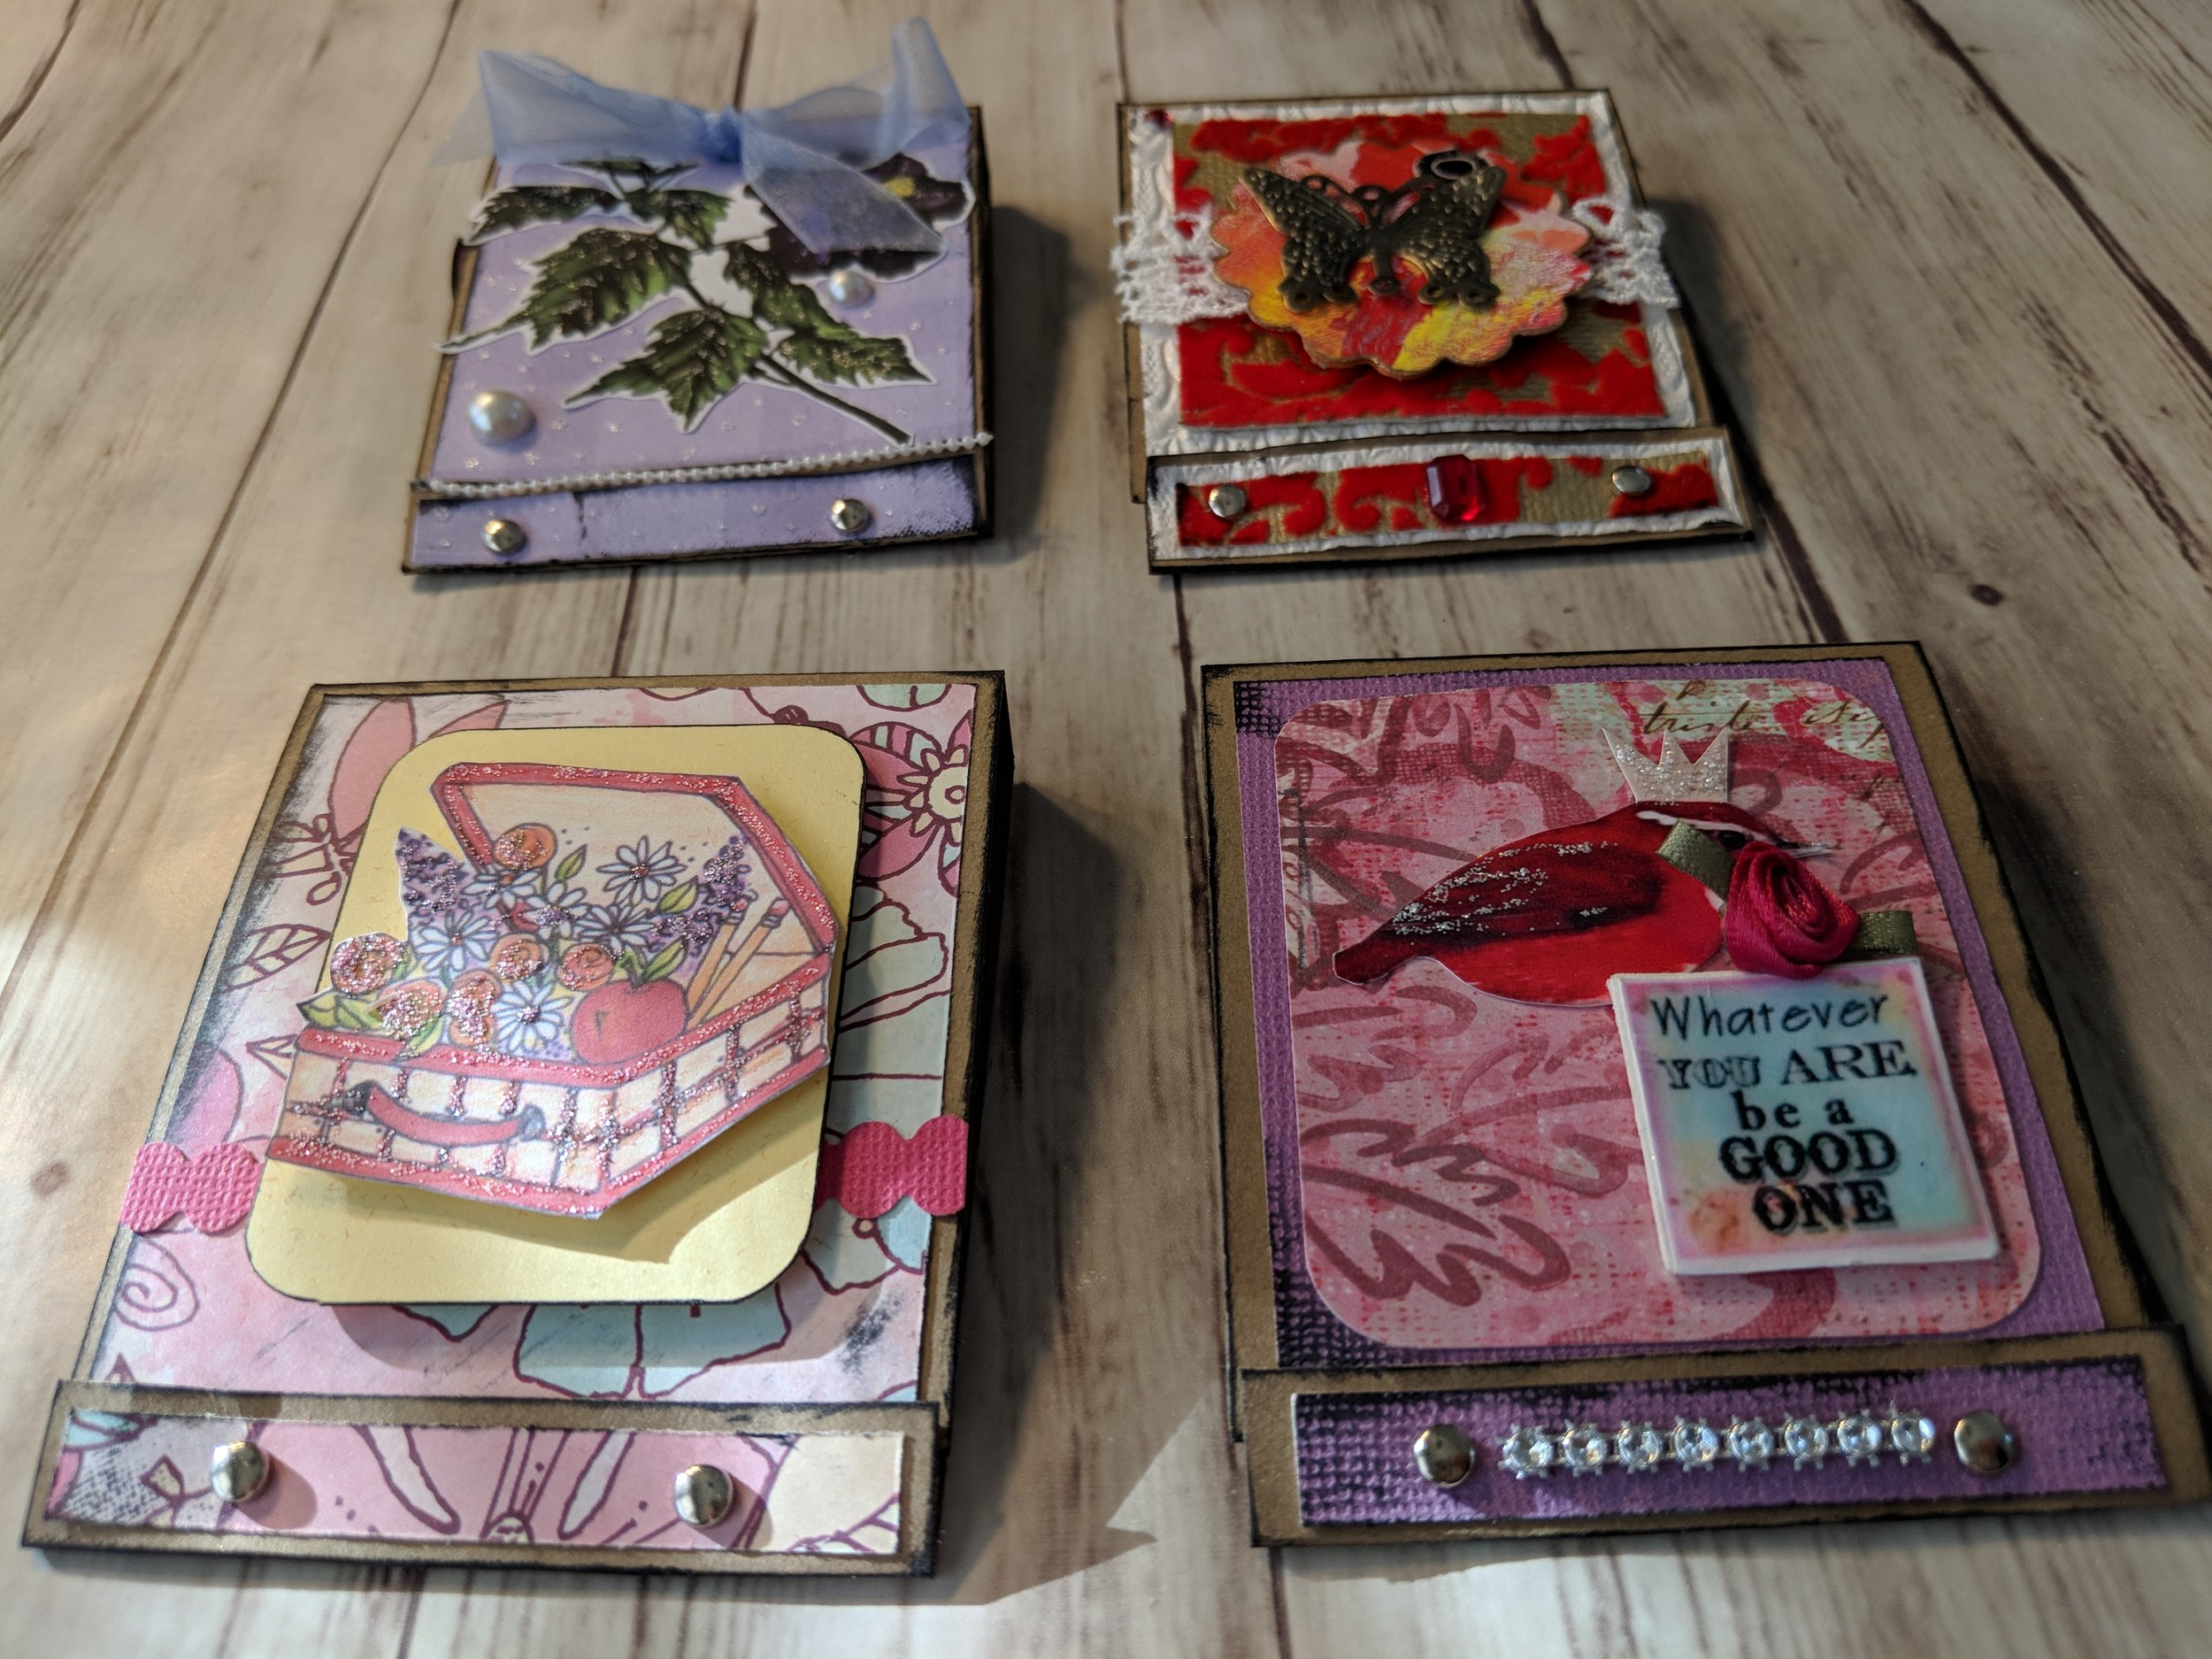 Mini Handmade Matchbooks filled with tiny pieces of art.